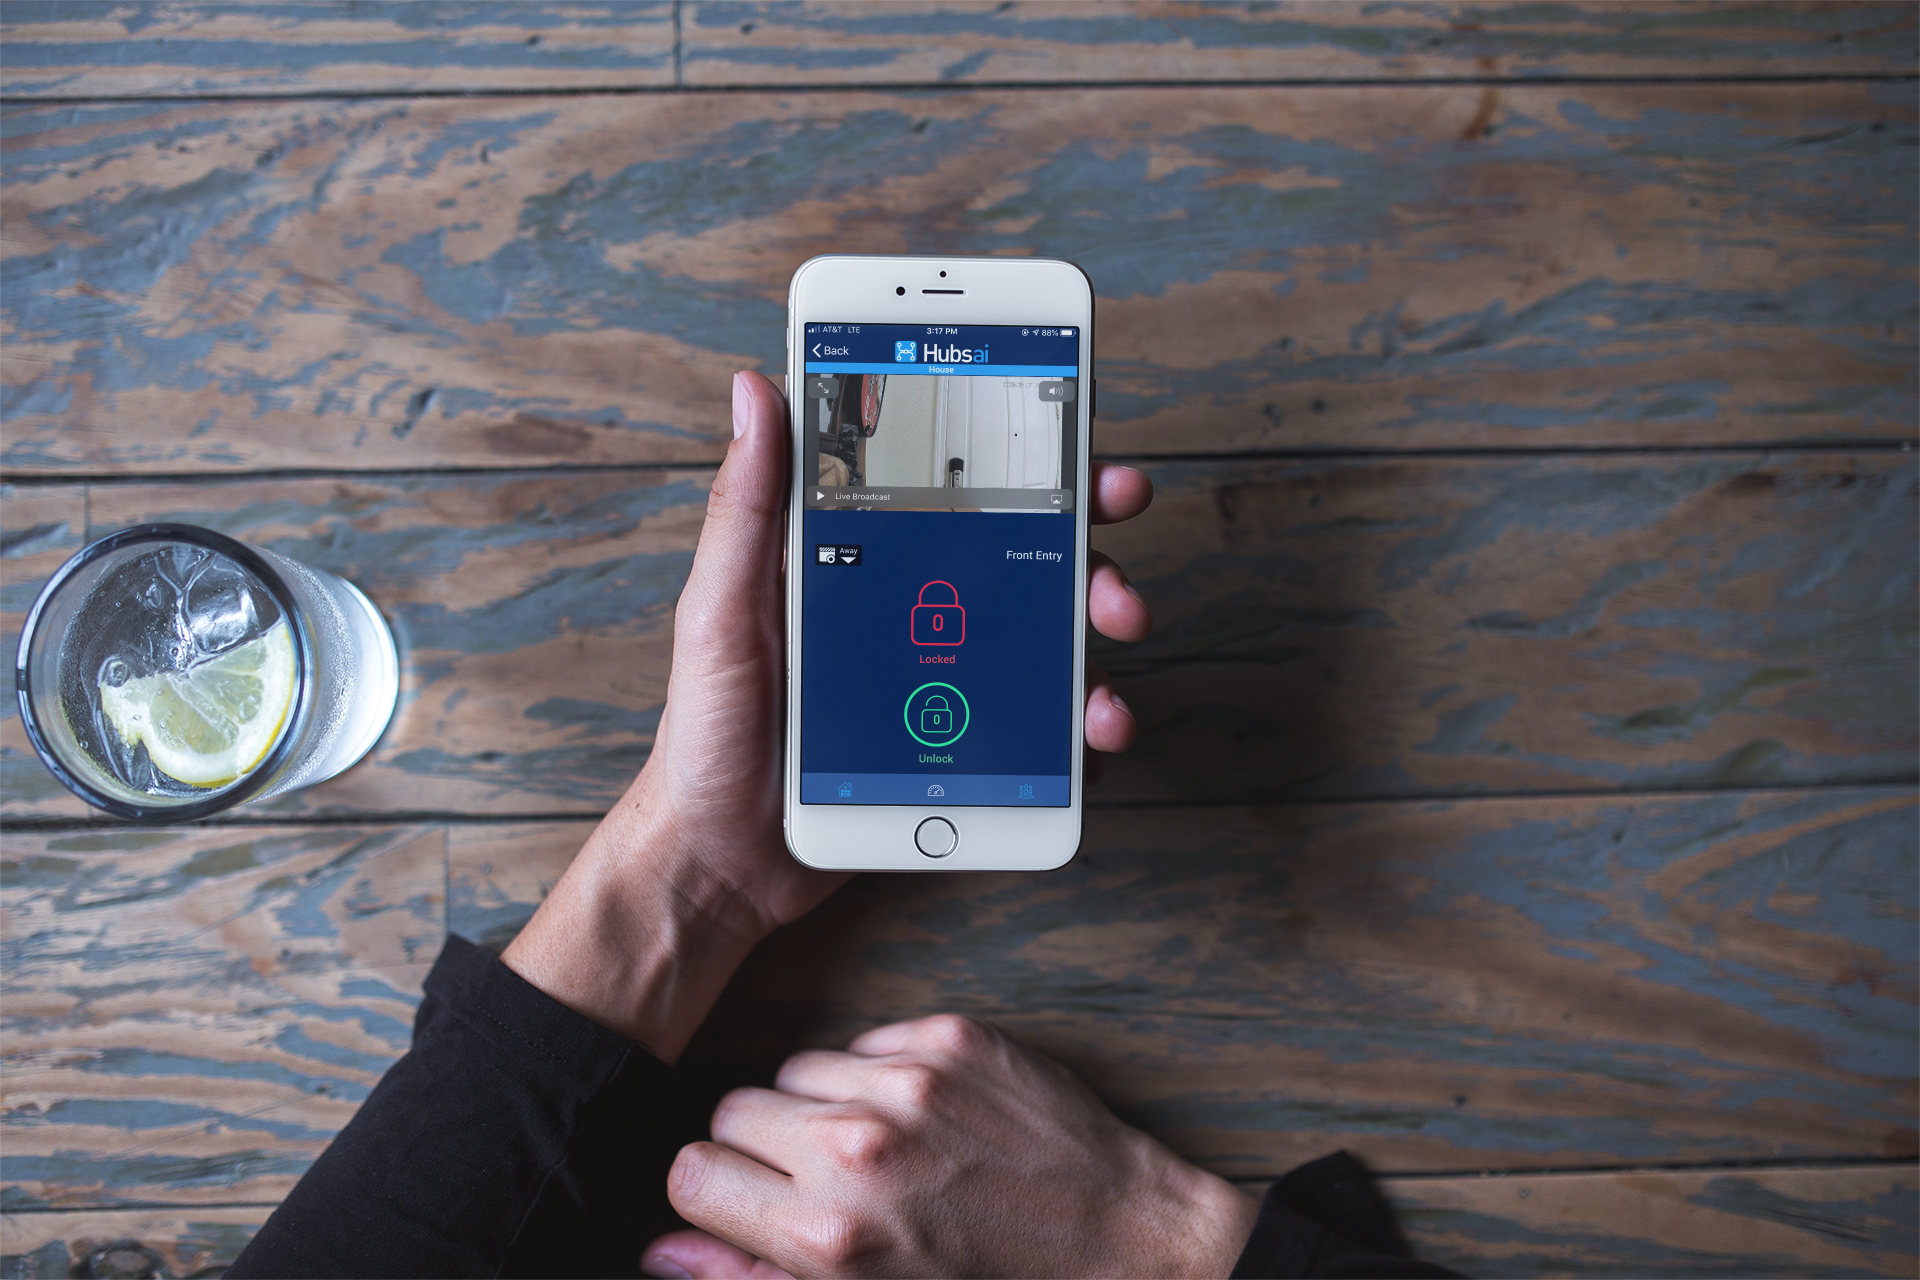 What to Know About Smart Locks in Your Smart Home